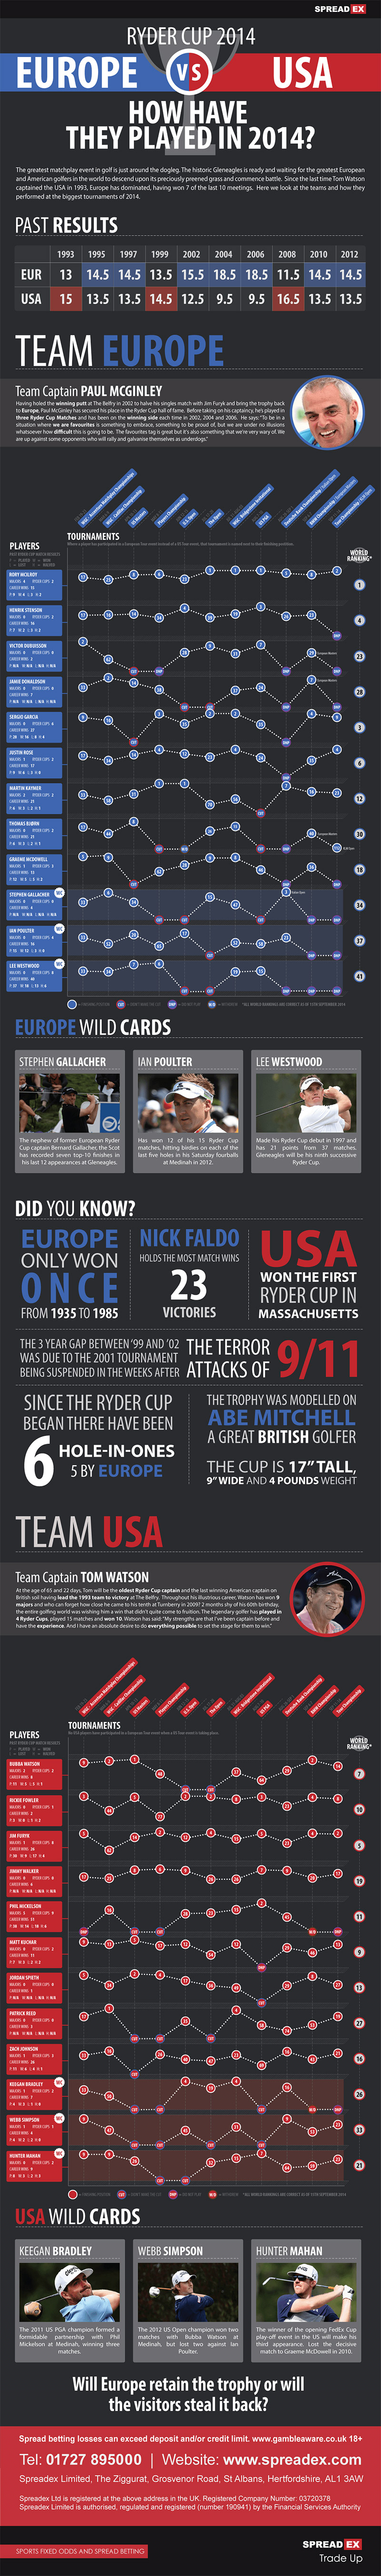 SpreadEx_Ryder-Cup_Infographic_Final_Comp_V2